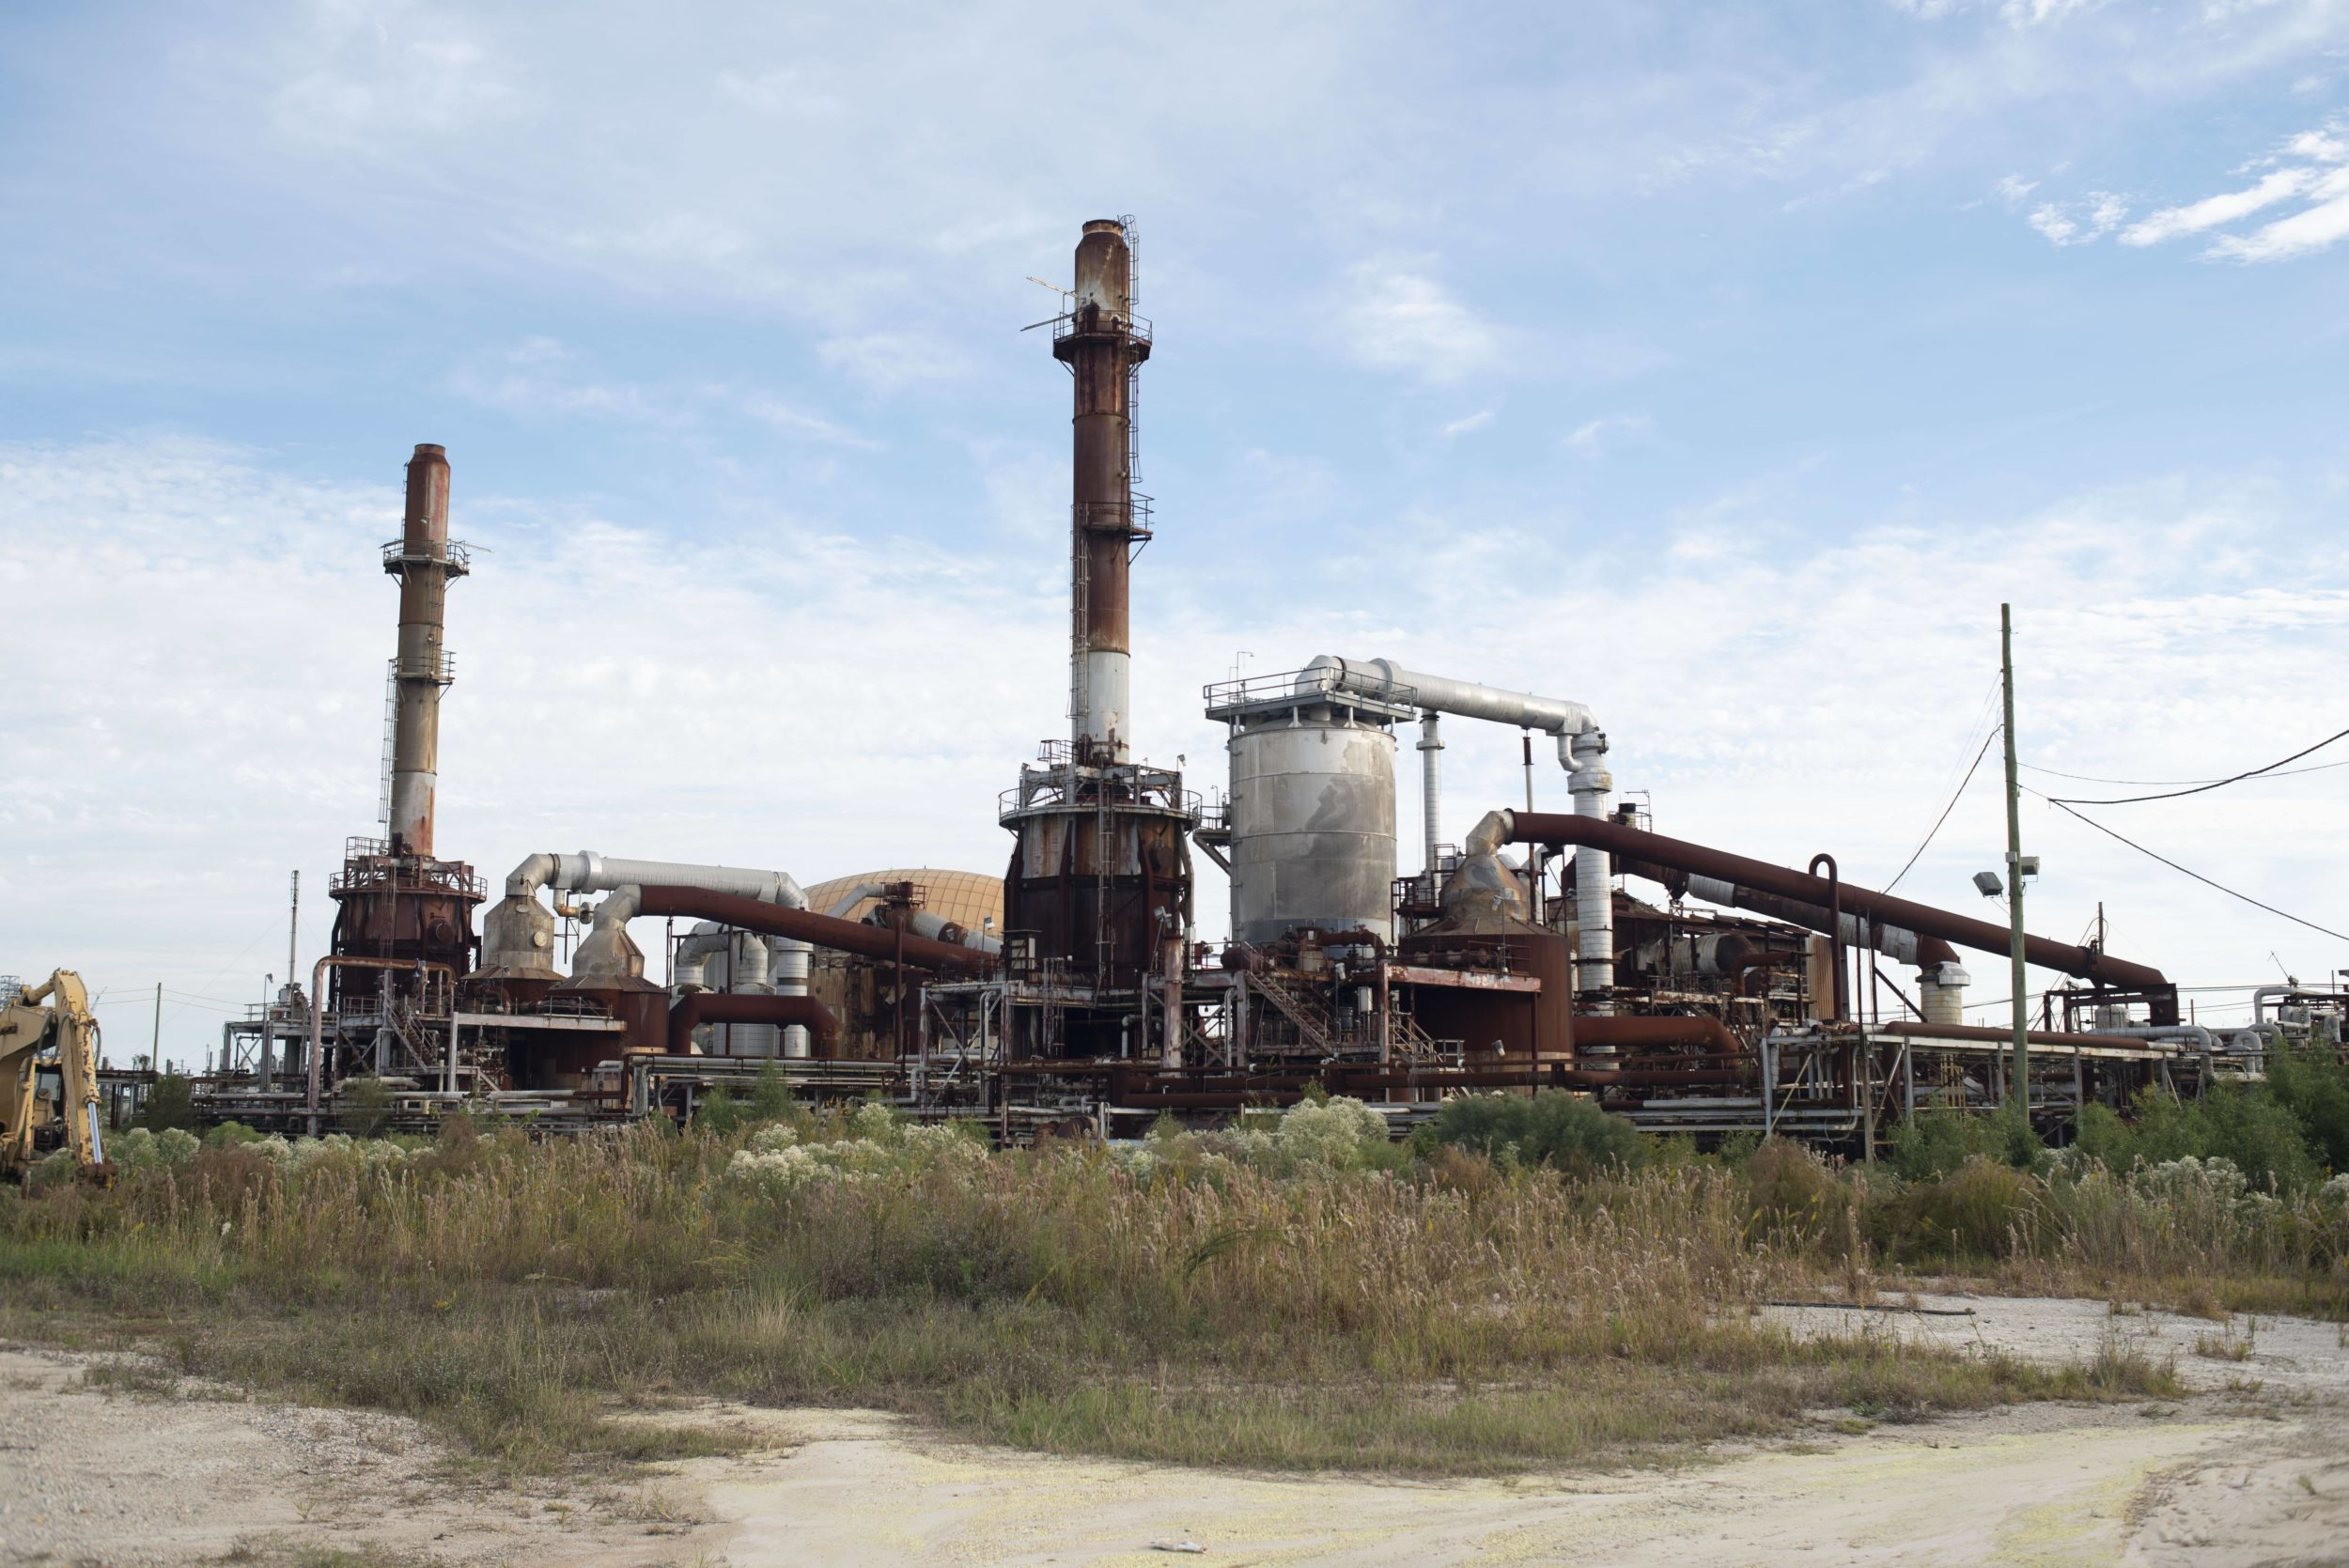 Abandoned Mississippi Phosphates Corporation Plant. (April 2020)